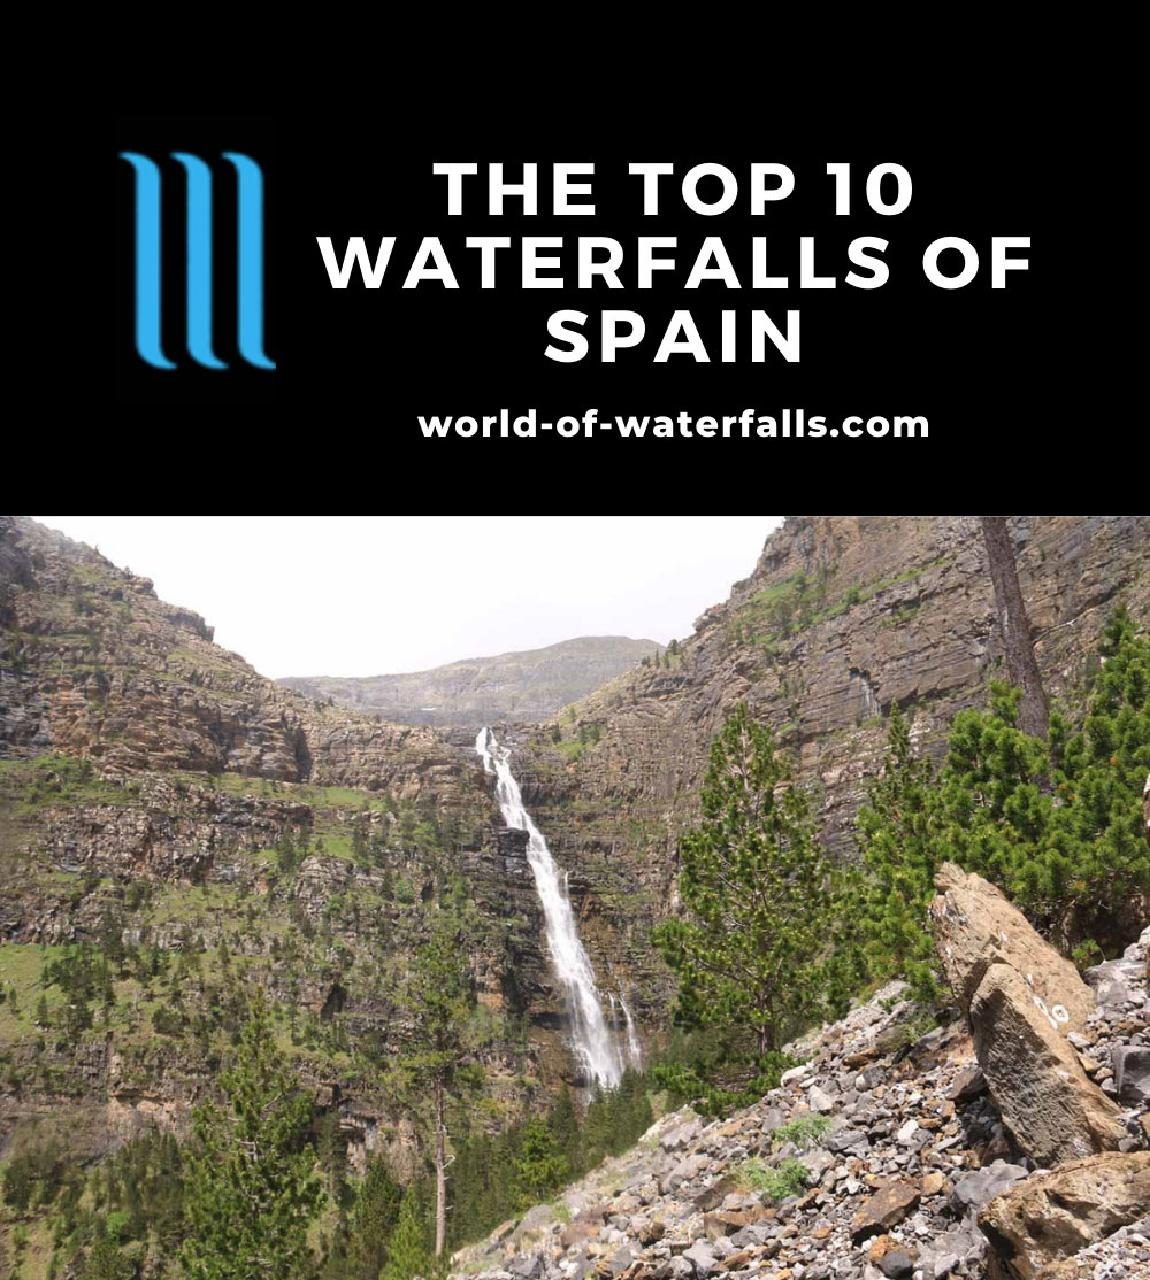 The Top 10 Waterfalls of Spain